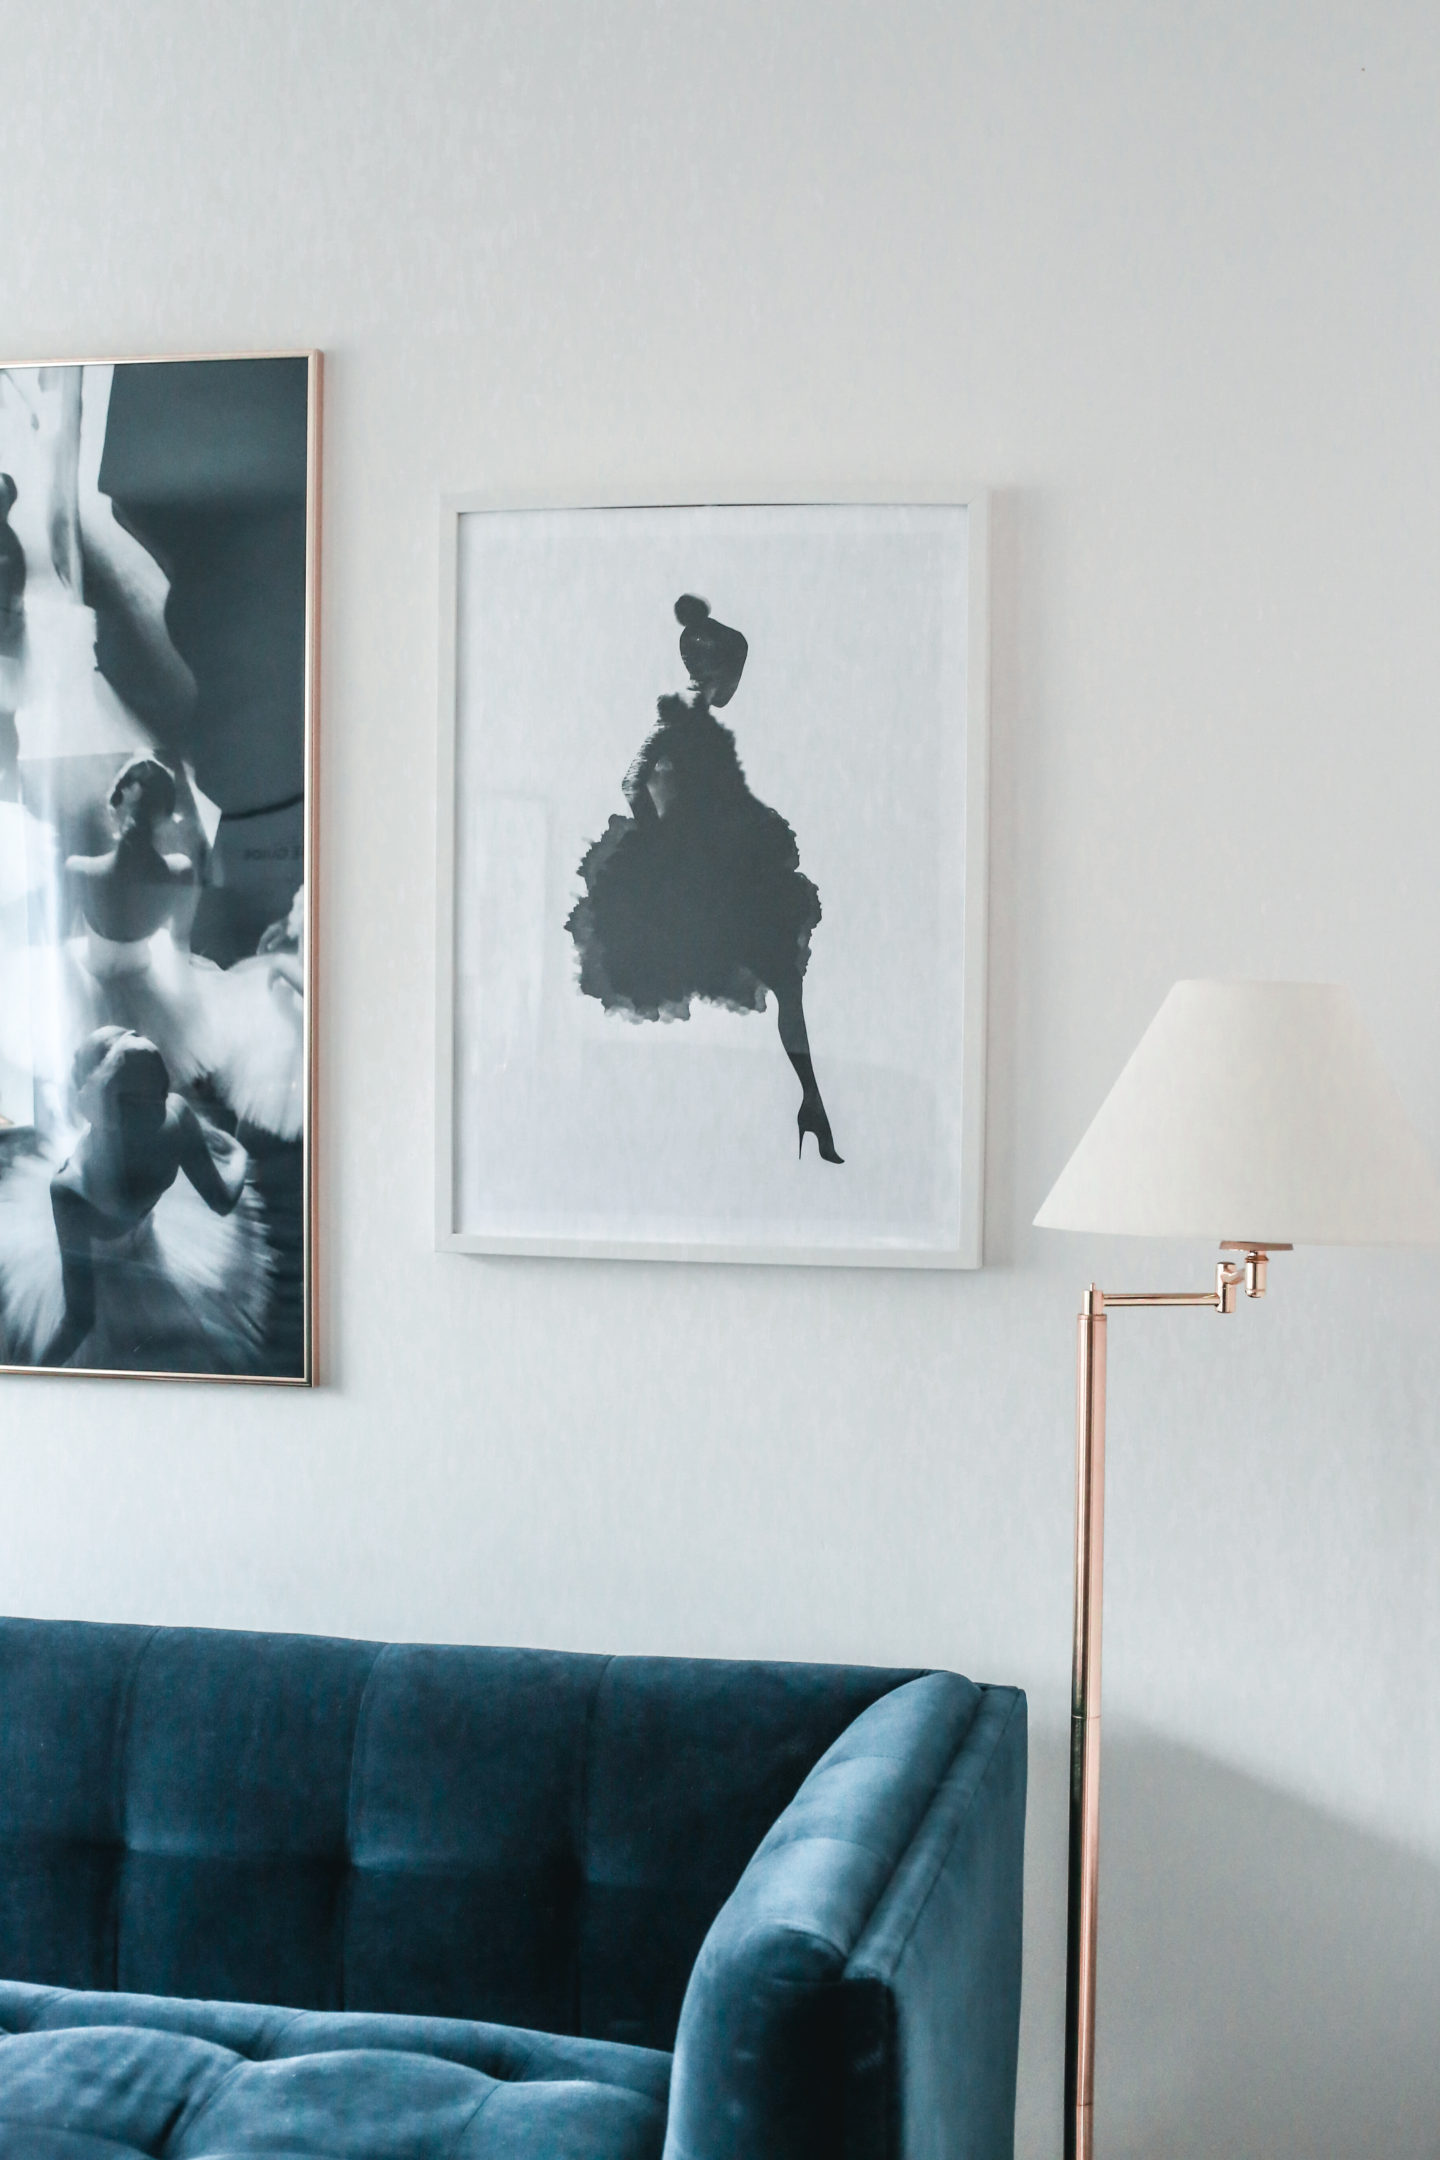 Affordable wall art you'll love - Desenio - Launeden